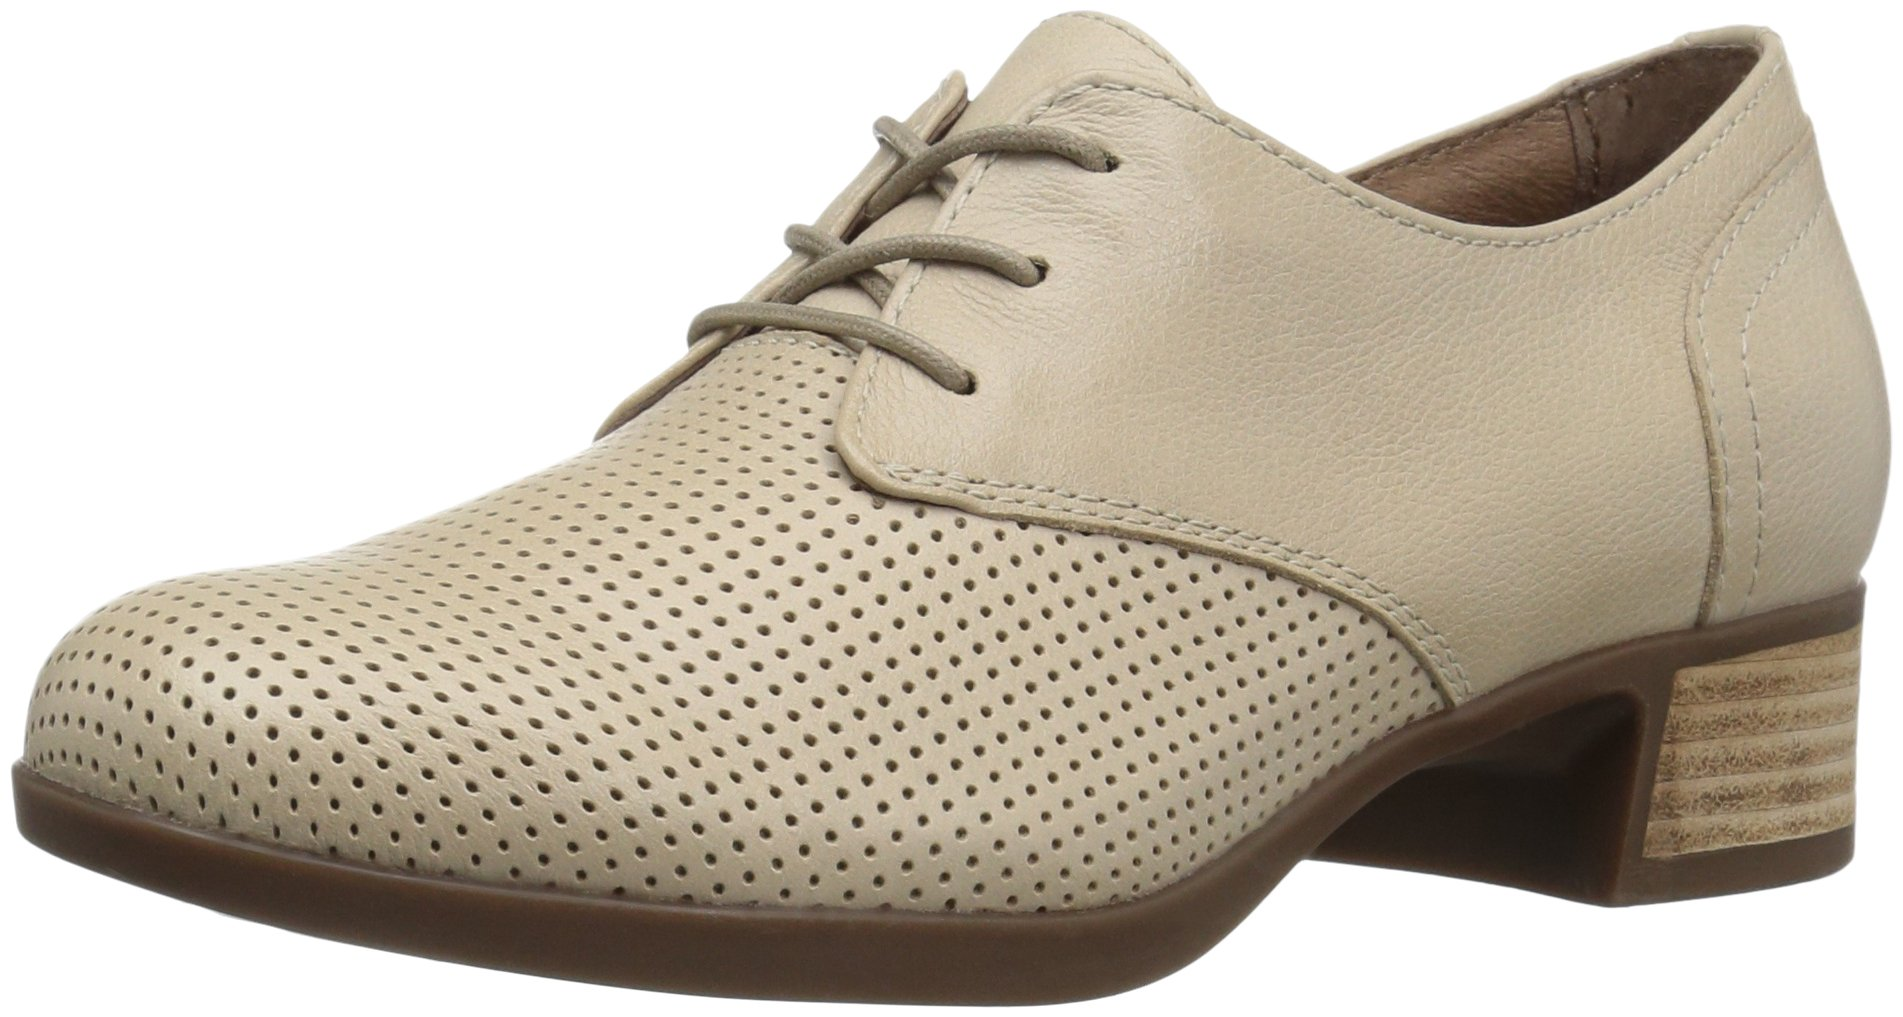 Dansko Women's Louise Oxford, Sand Burnished Nappa, 39 EU/8.5-9 M US